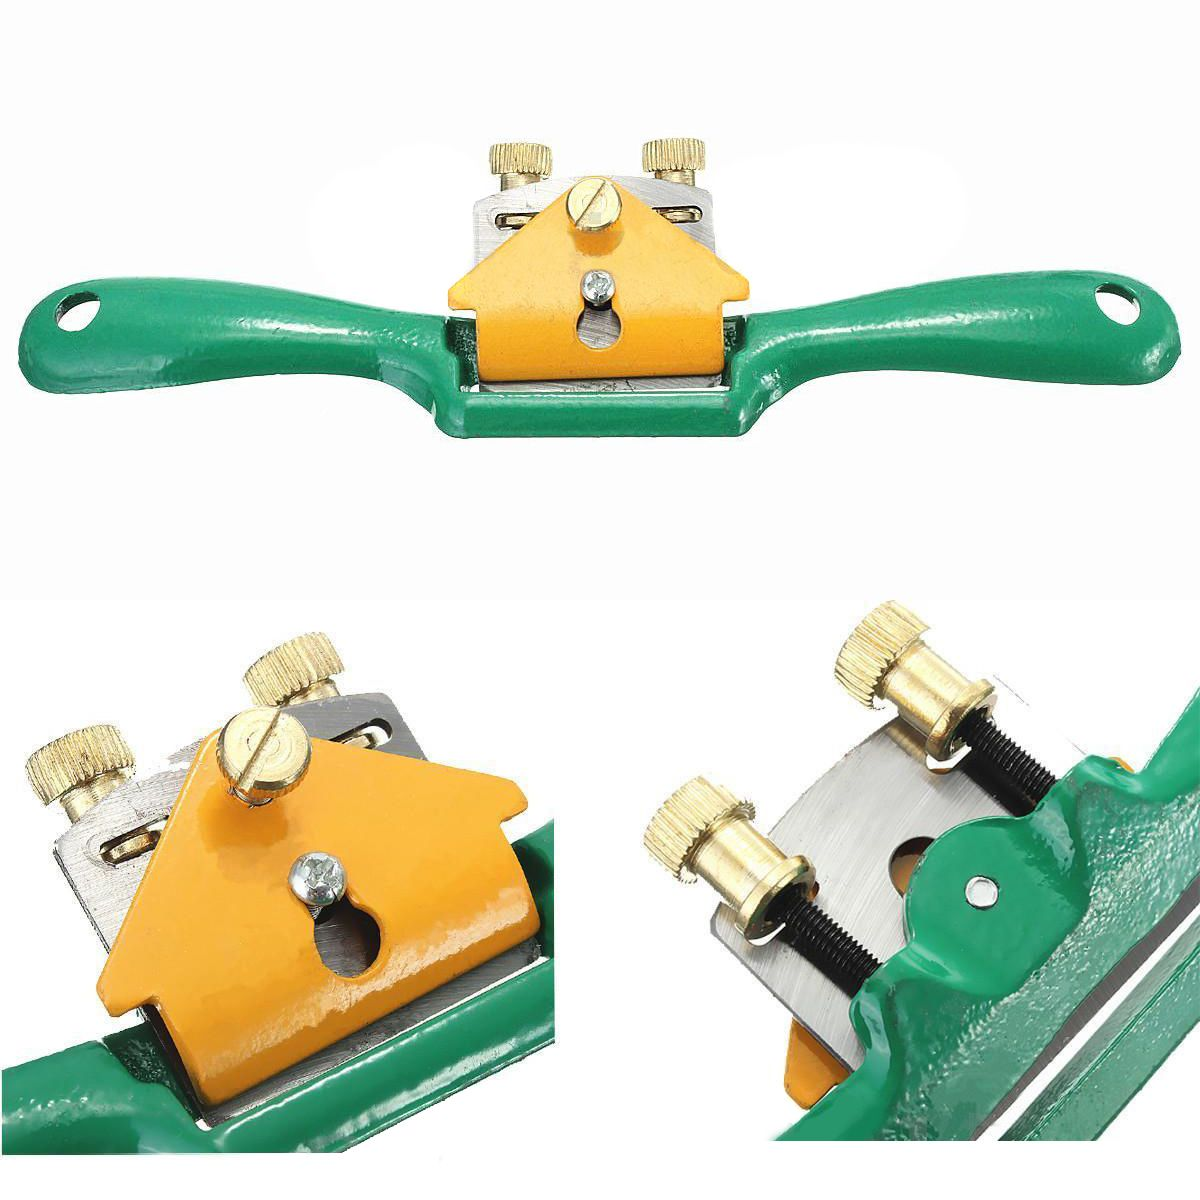 2019 Iron Spoke Shave Plane Mayitr Metal Cutting Edge Wood Shaping For Woodworker Woodworking Machinery 44mm